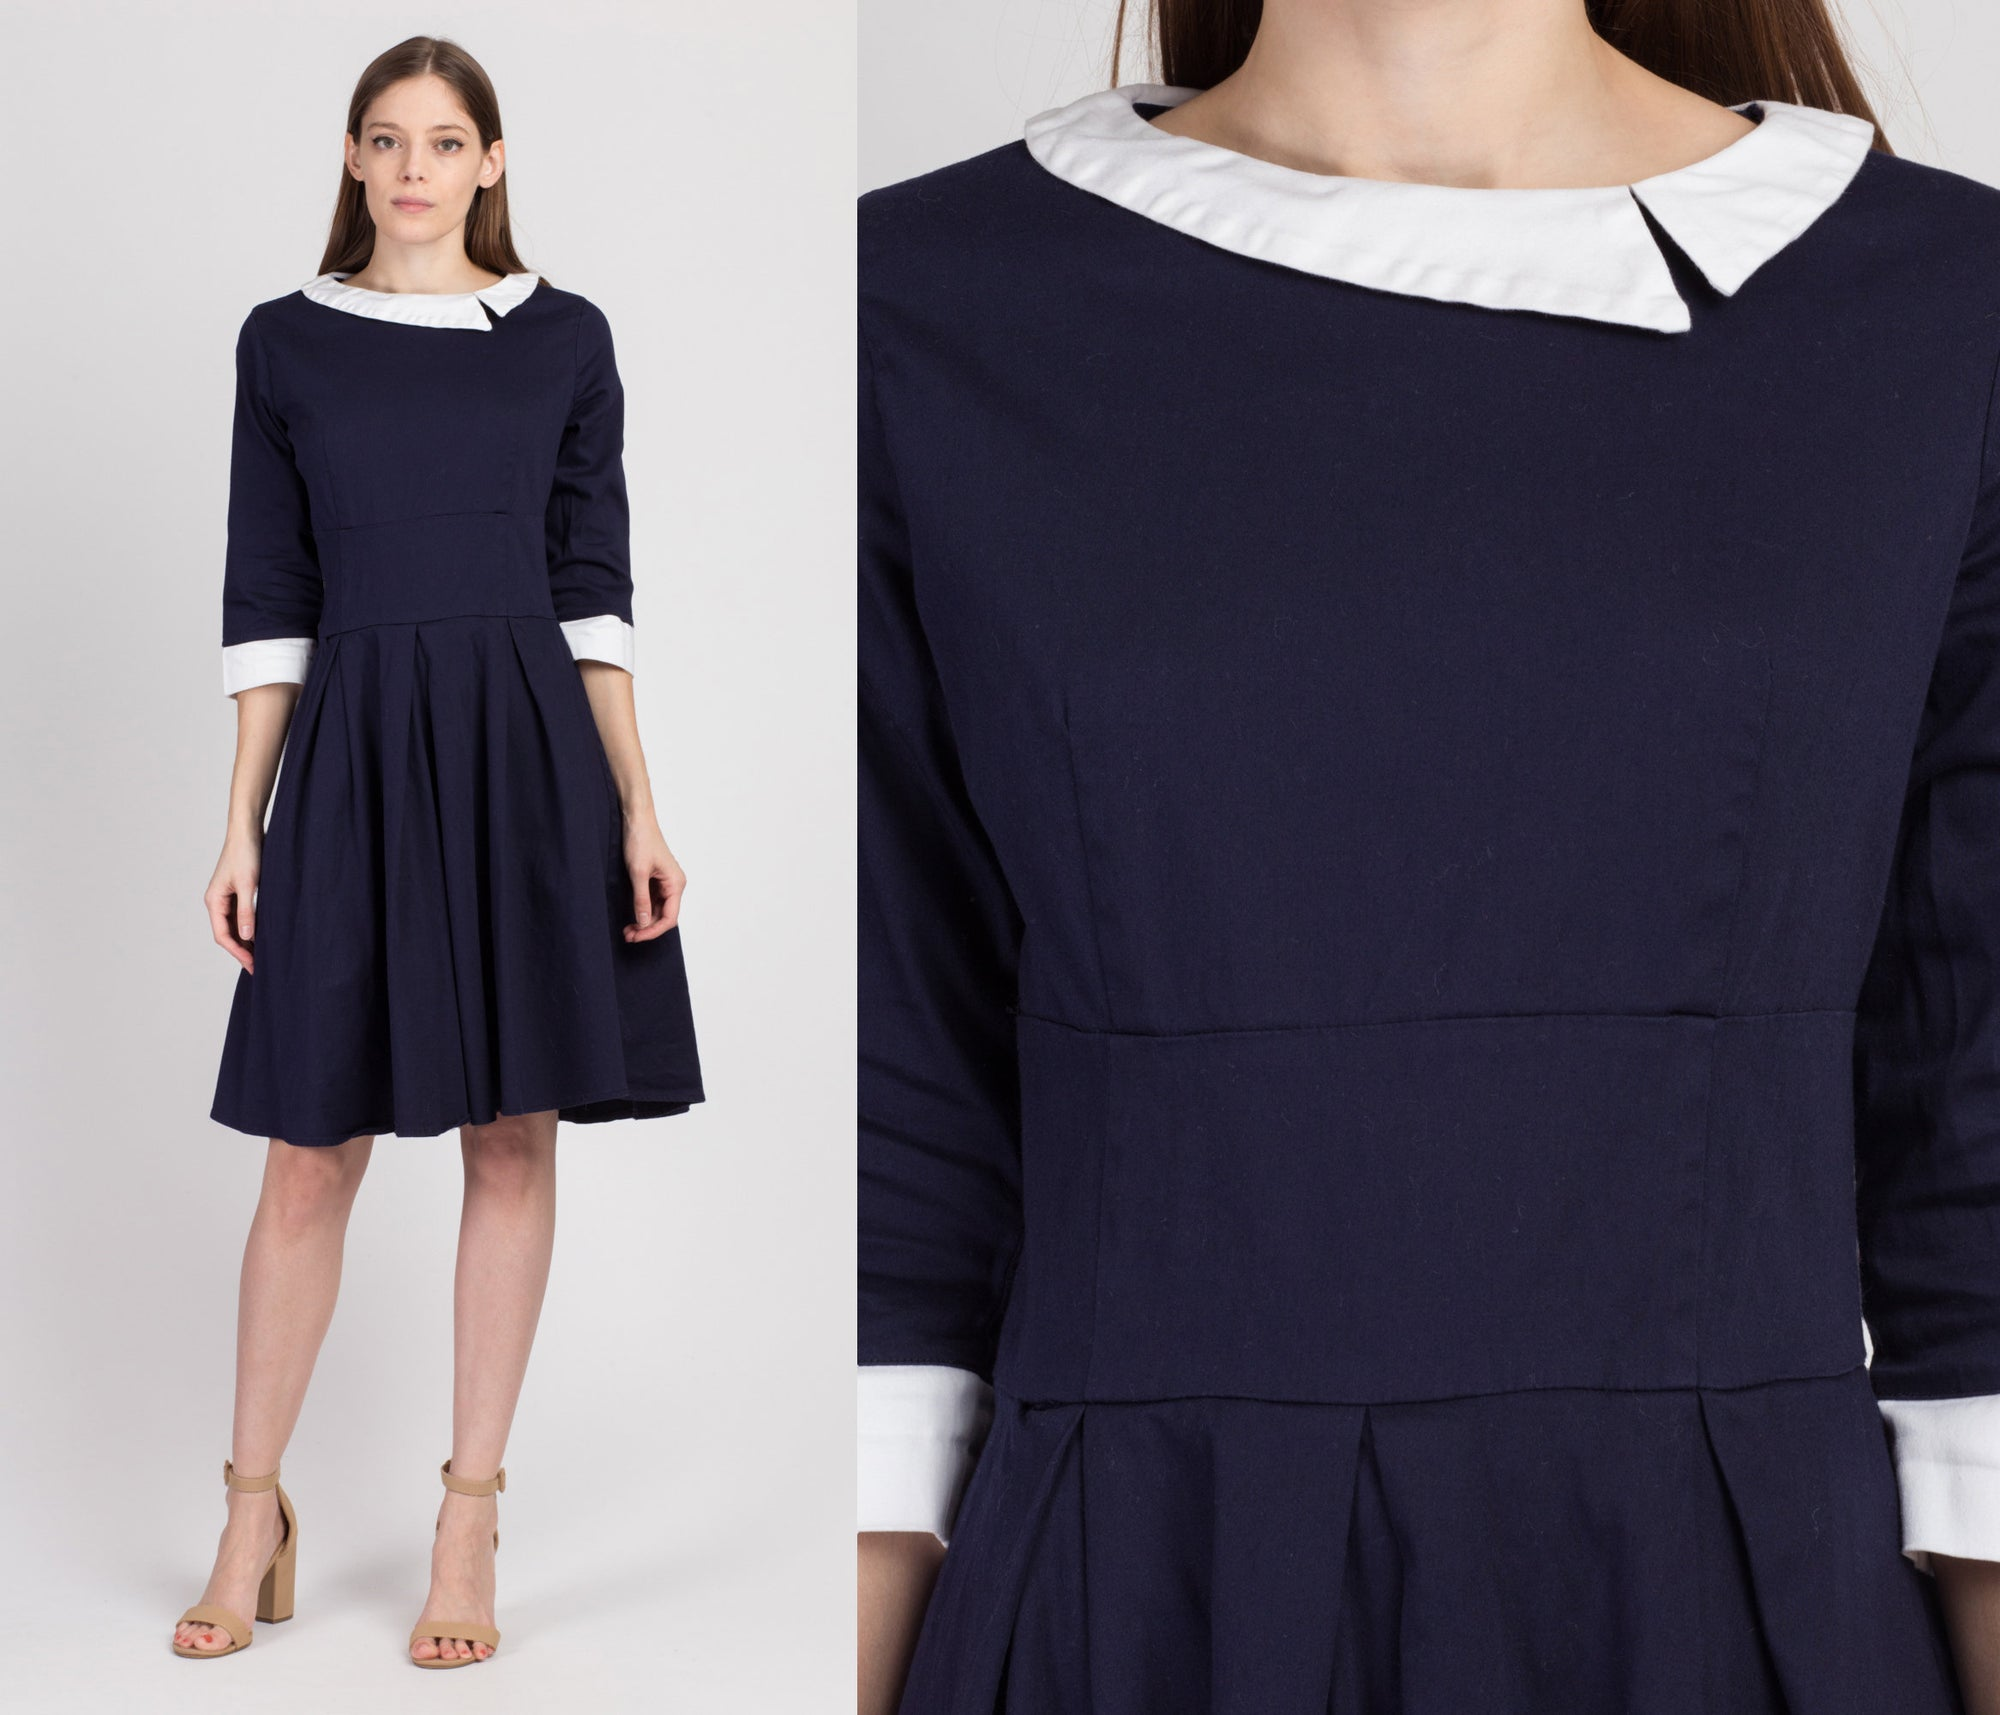 Vintage Navy Blue & White Sailor Collar Dress - Medium to Large